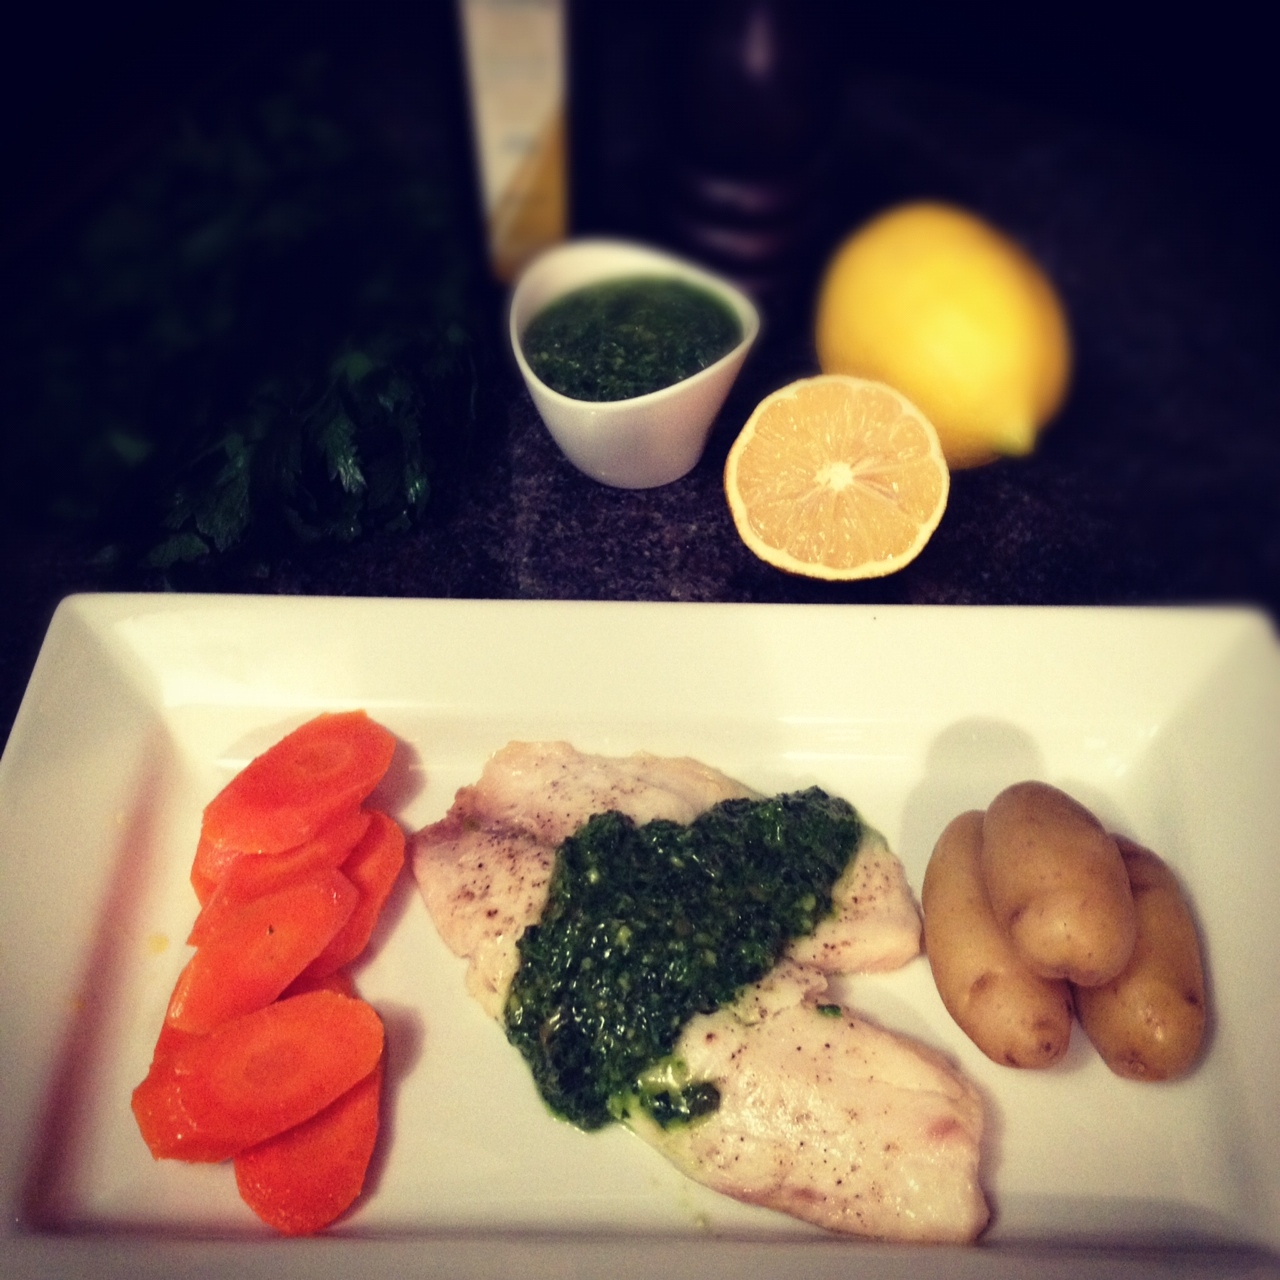 ... Dinner: Ovenbaked Tilapia with Salsa Verde | shoesfoodandfriends